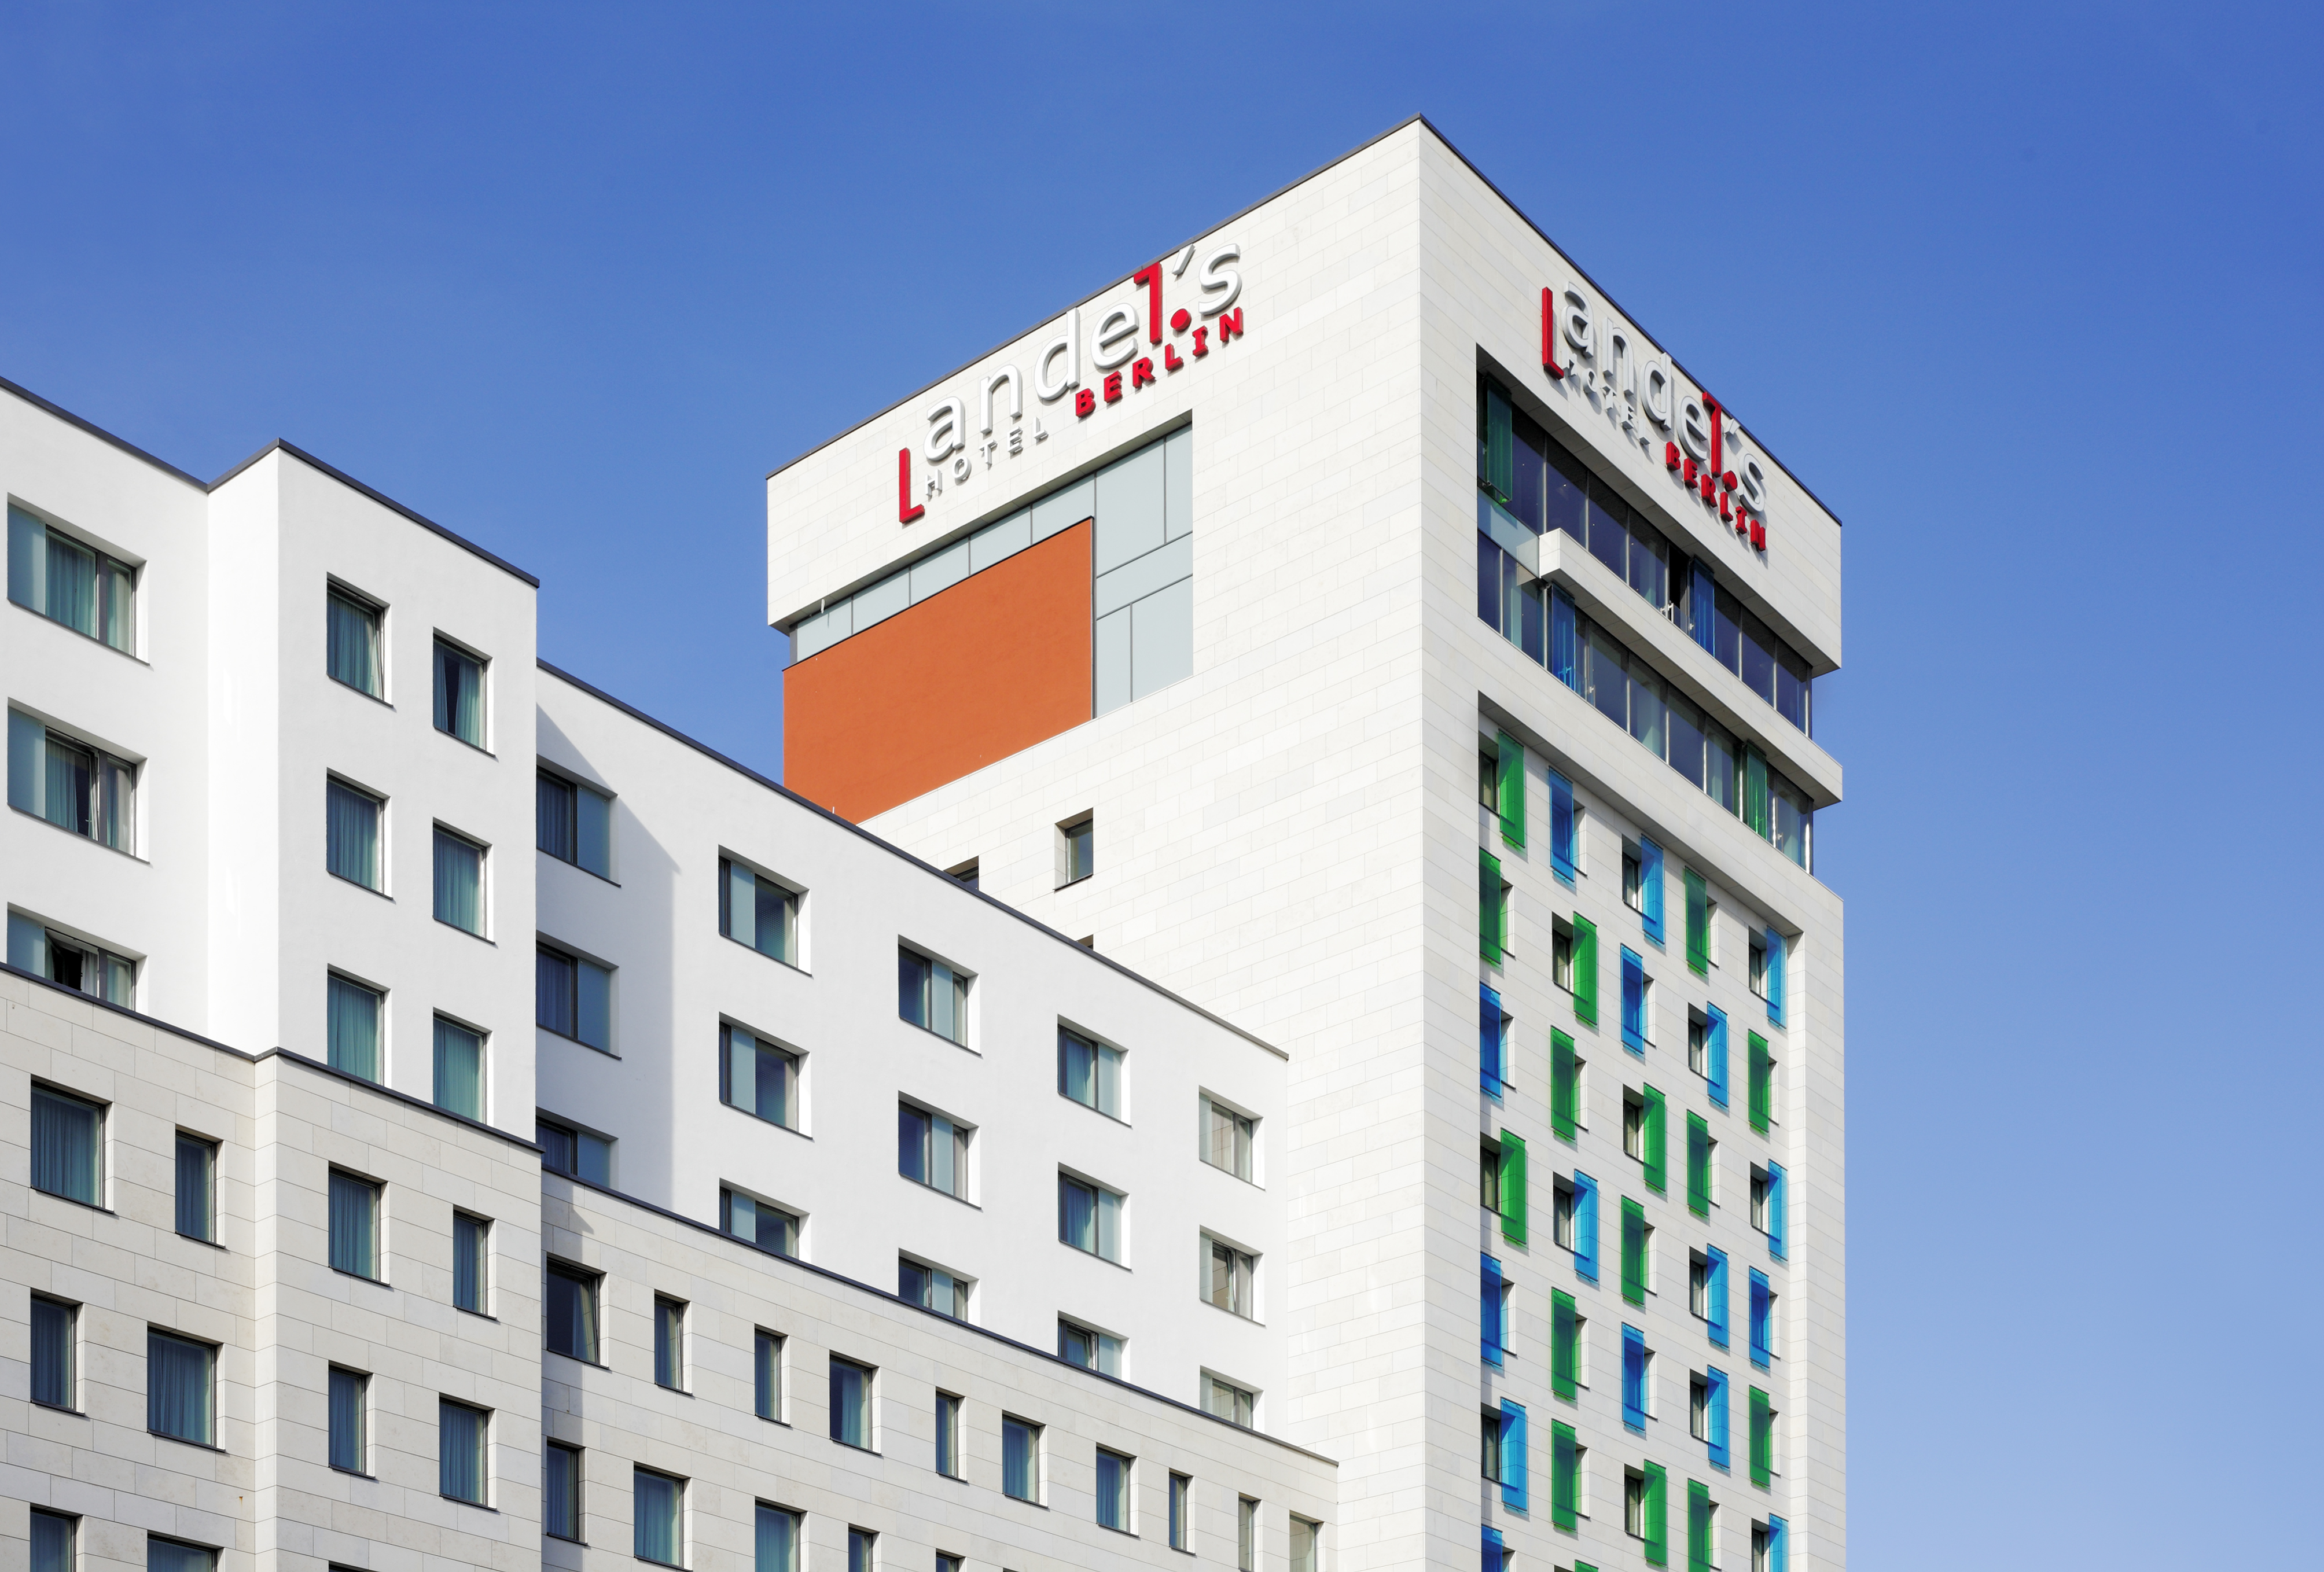 andelsHotelberlin_FrontView_Copyright_Stefan-Dauth